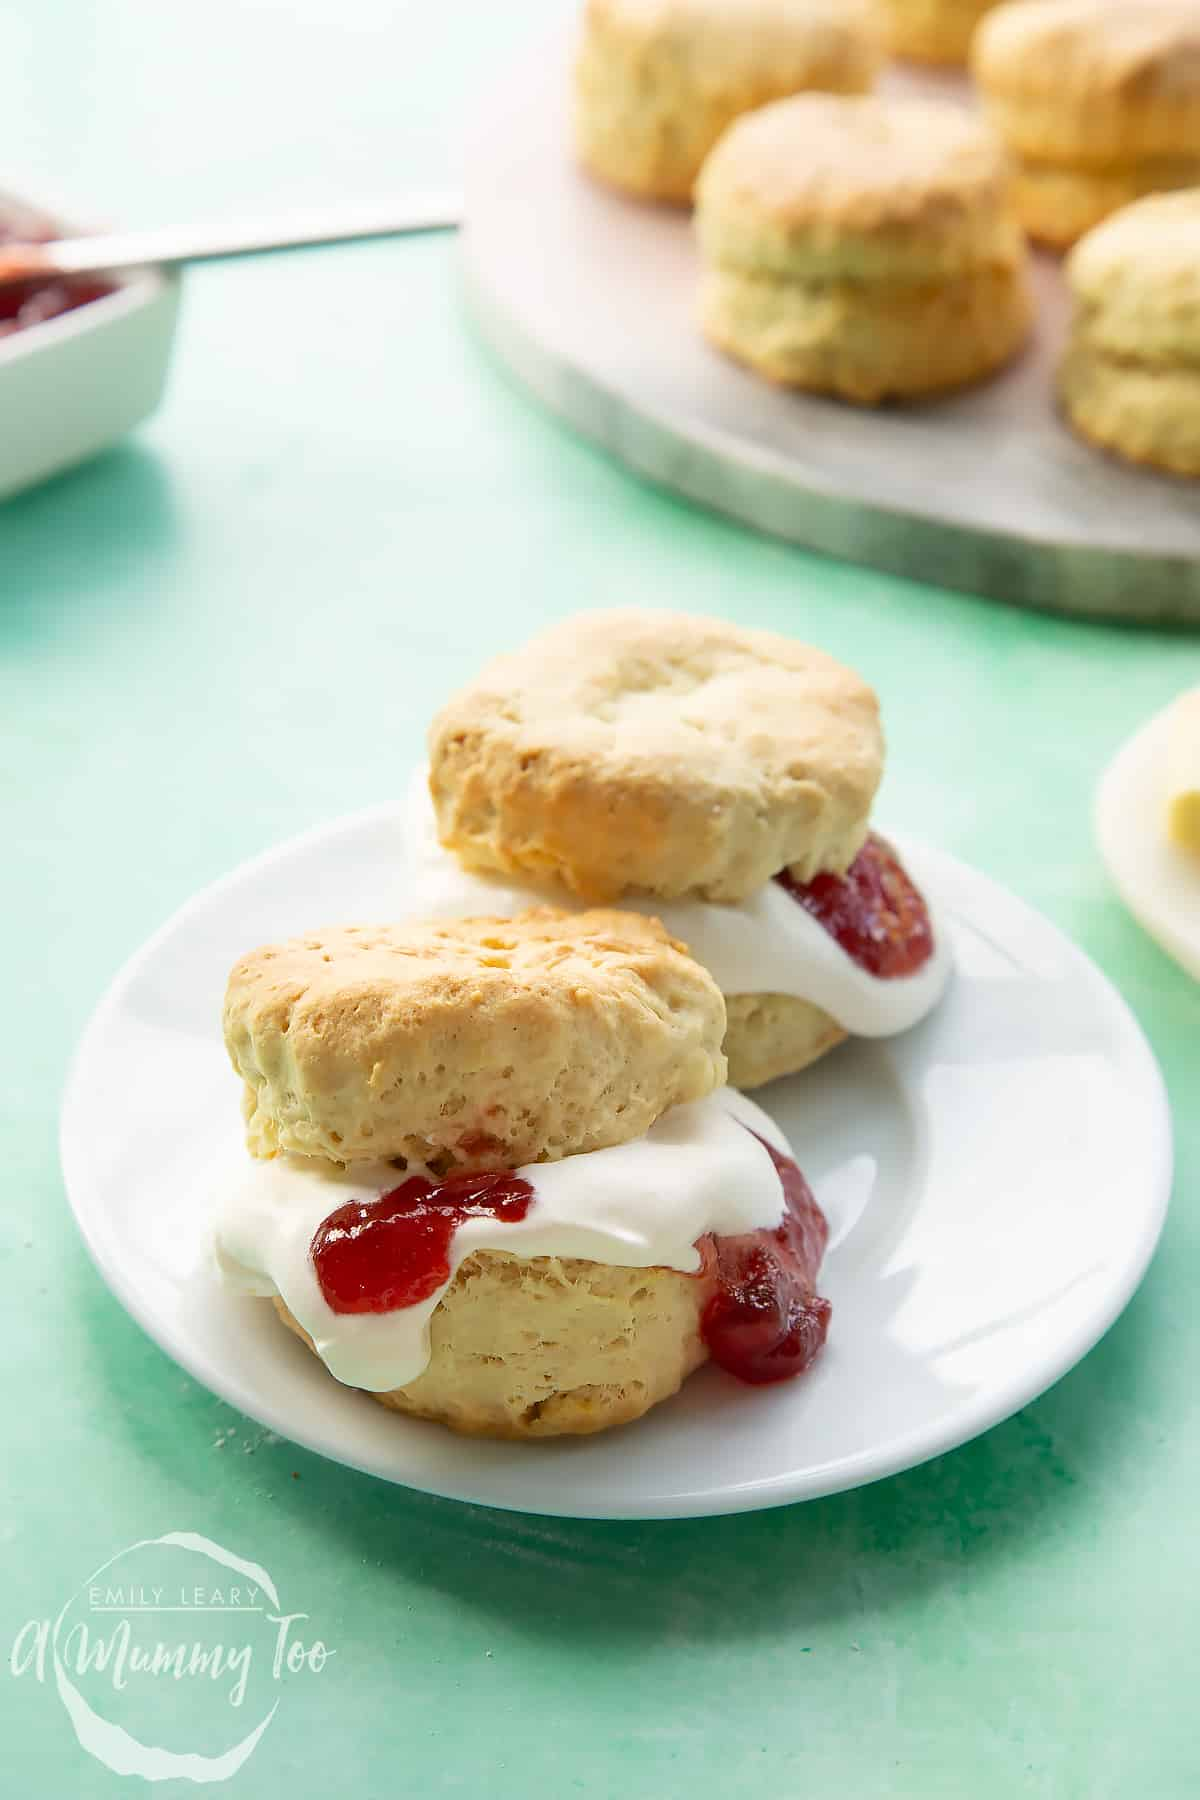 Two dairy free scones on a white plate. They are filled with jam and vegan whipped cream.